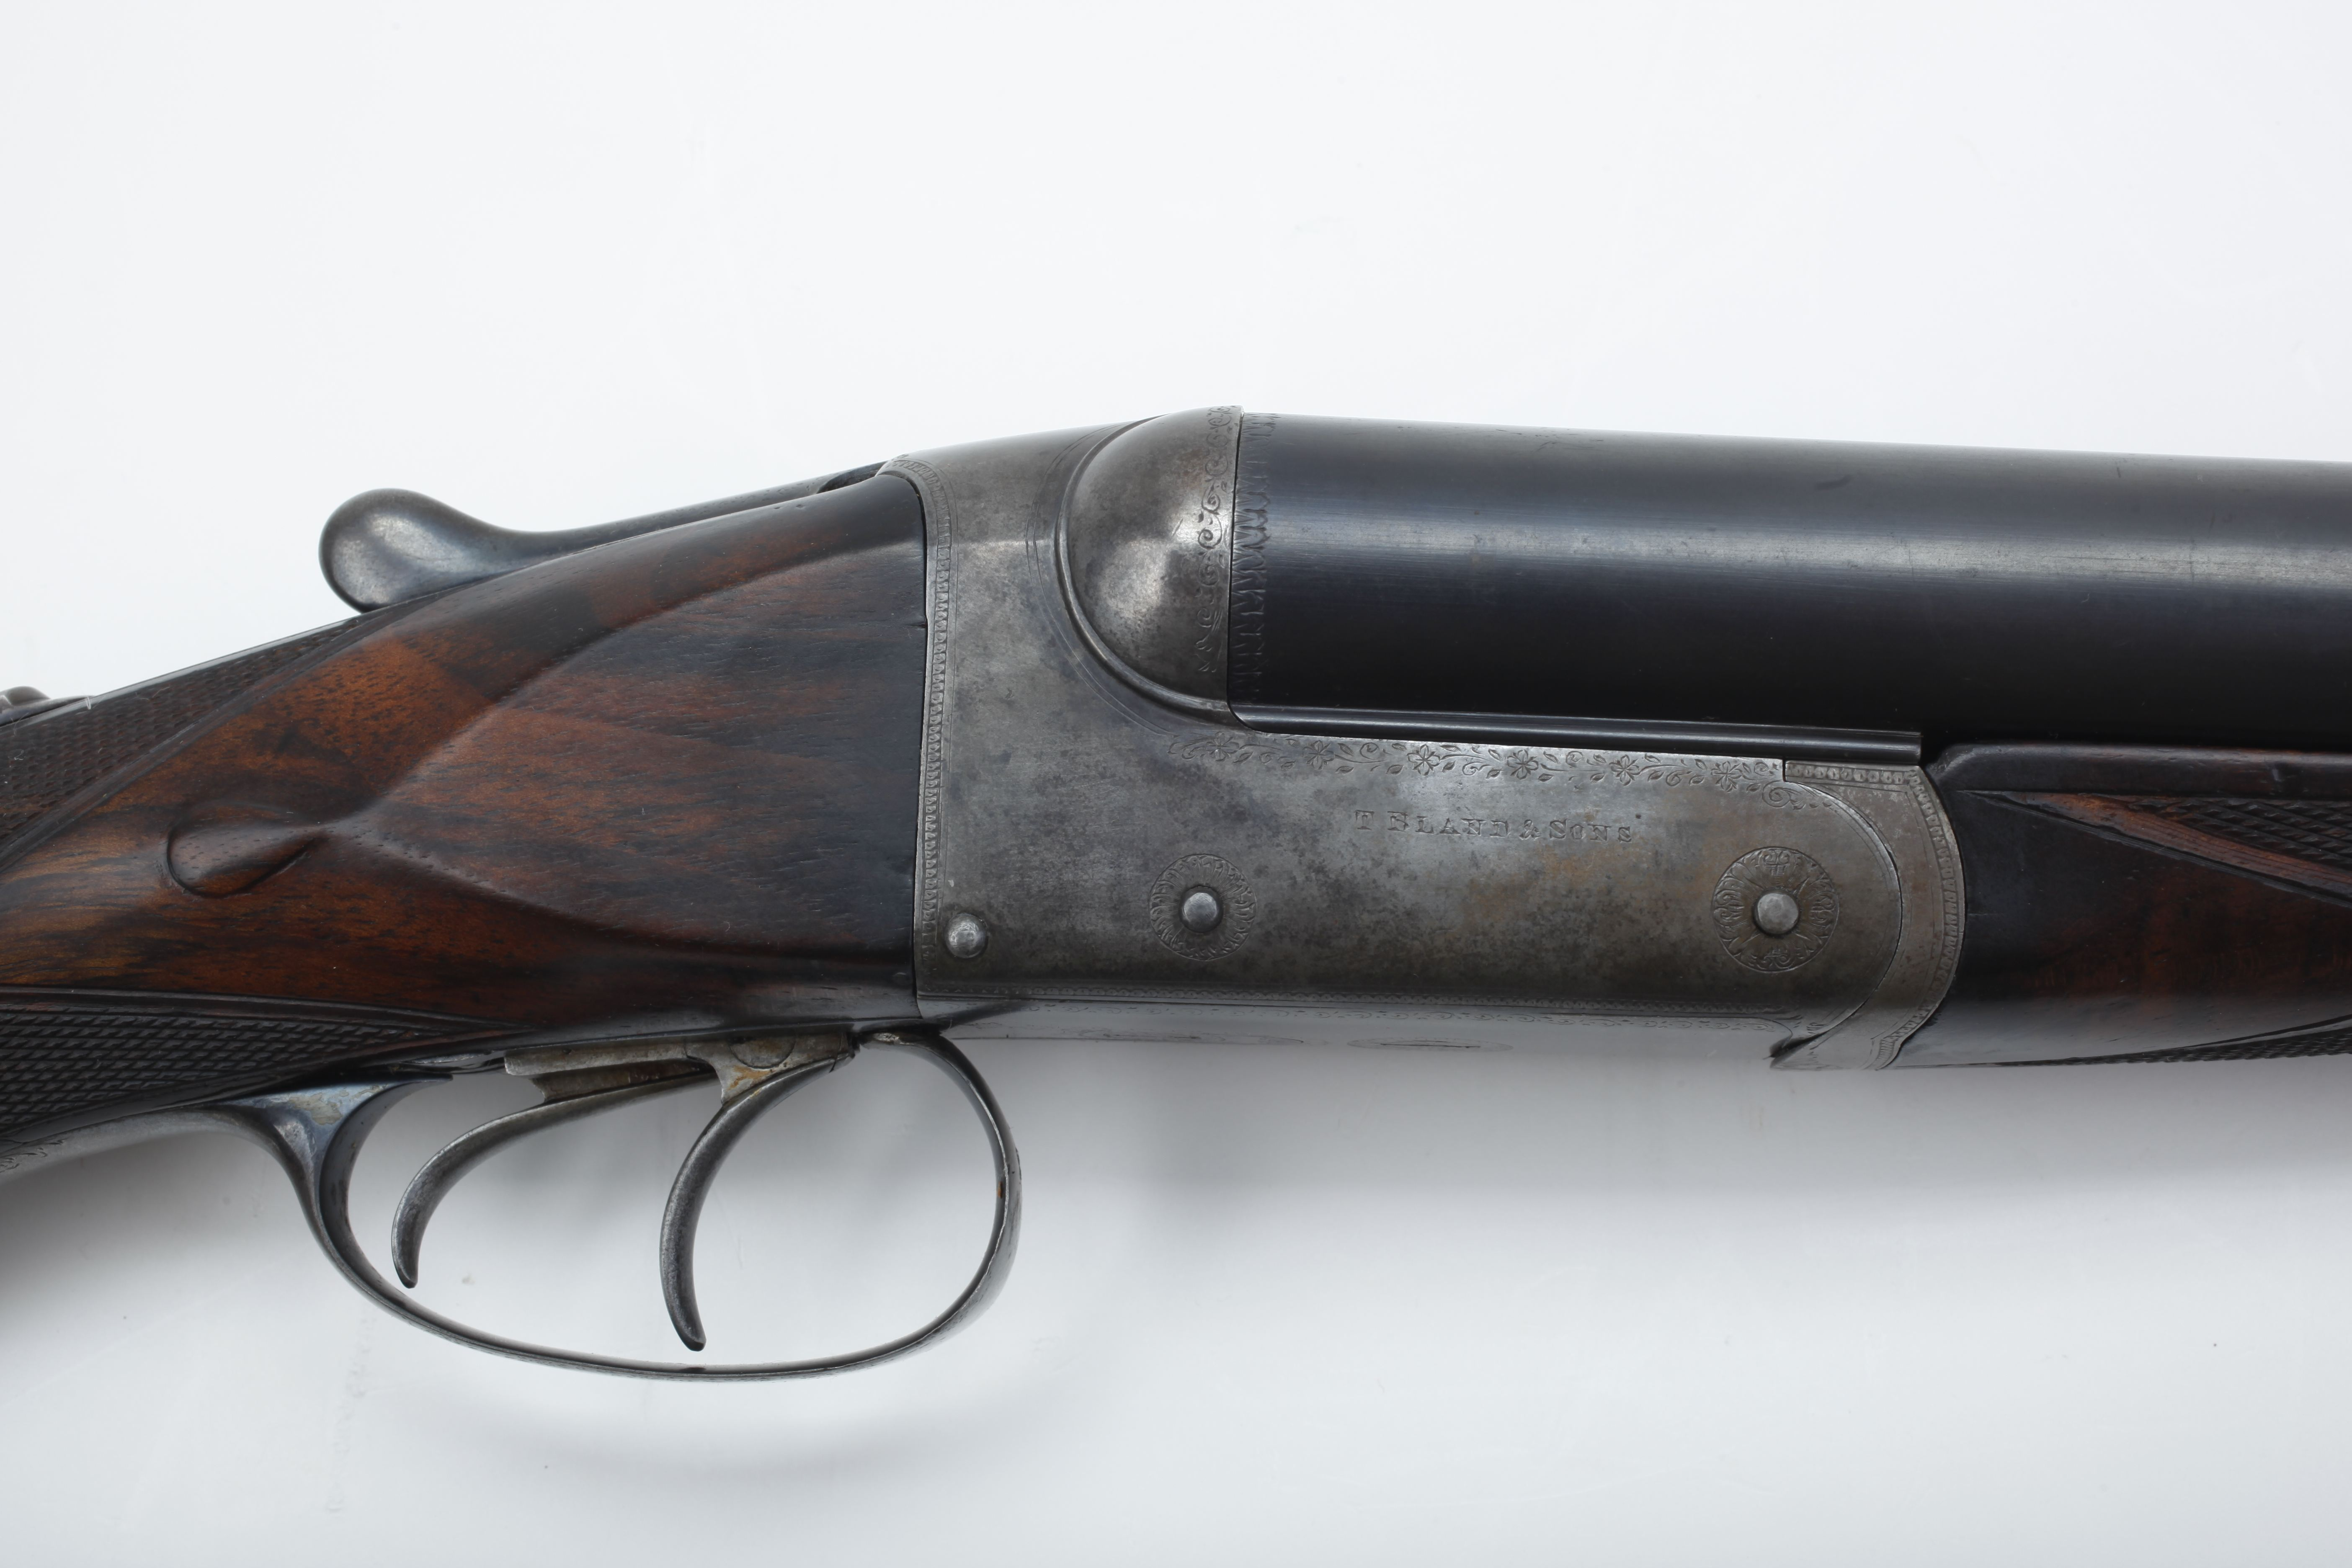 Thomas Bland Side by Side Double Rifle - .577 Nitro Express cal.